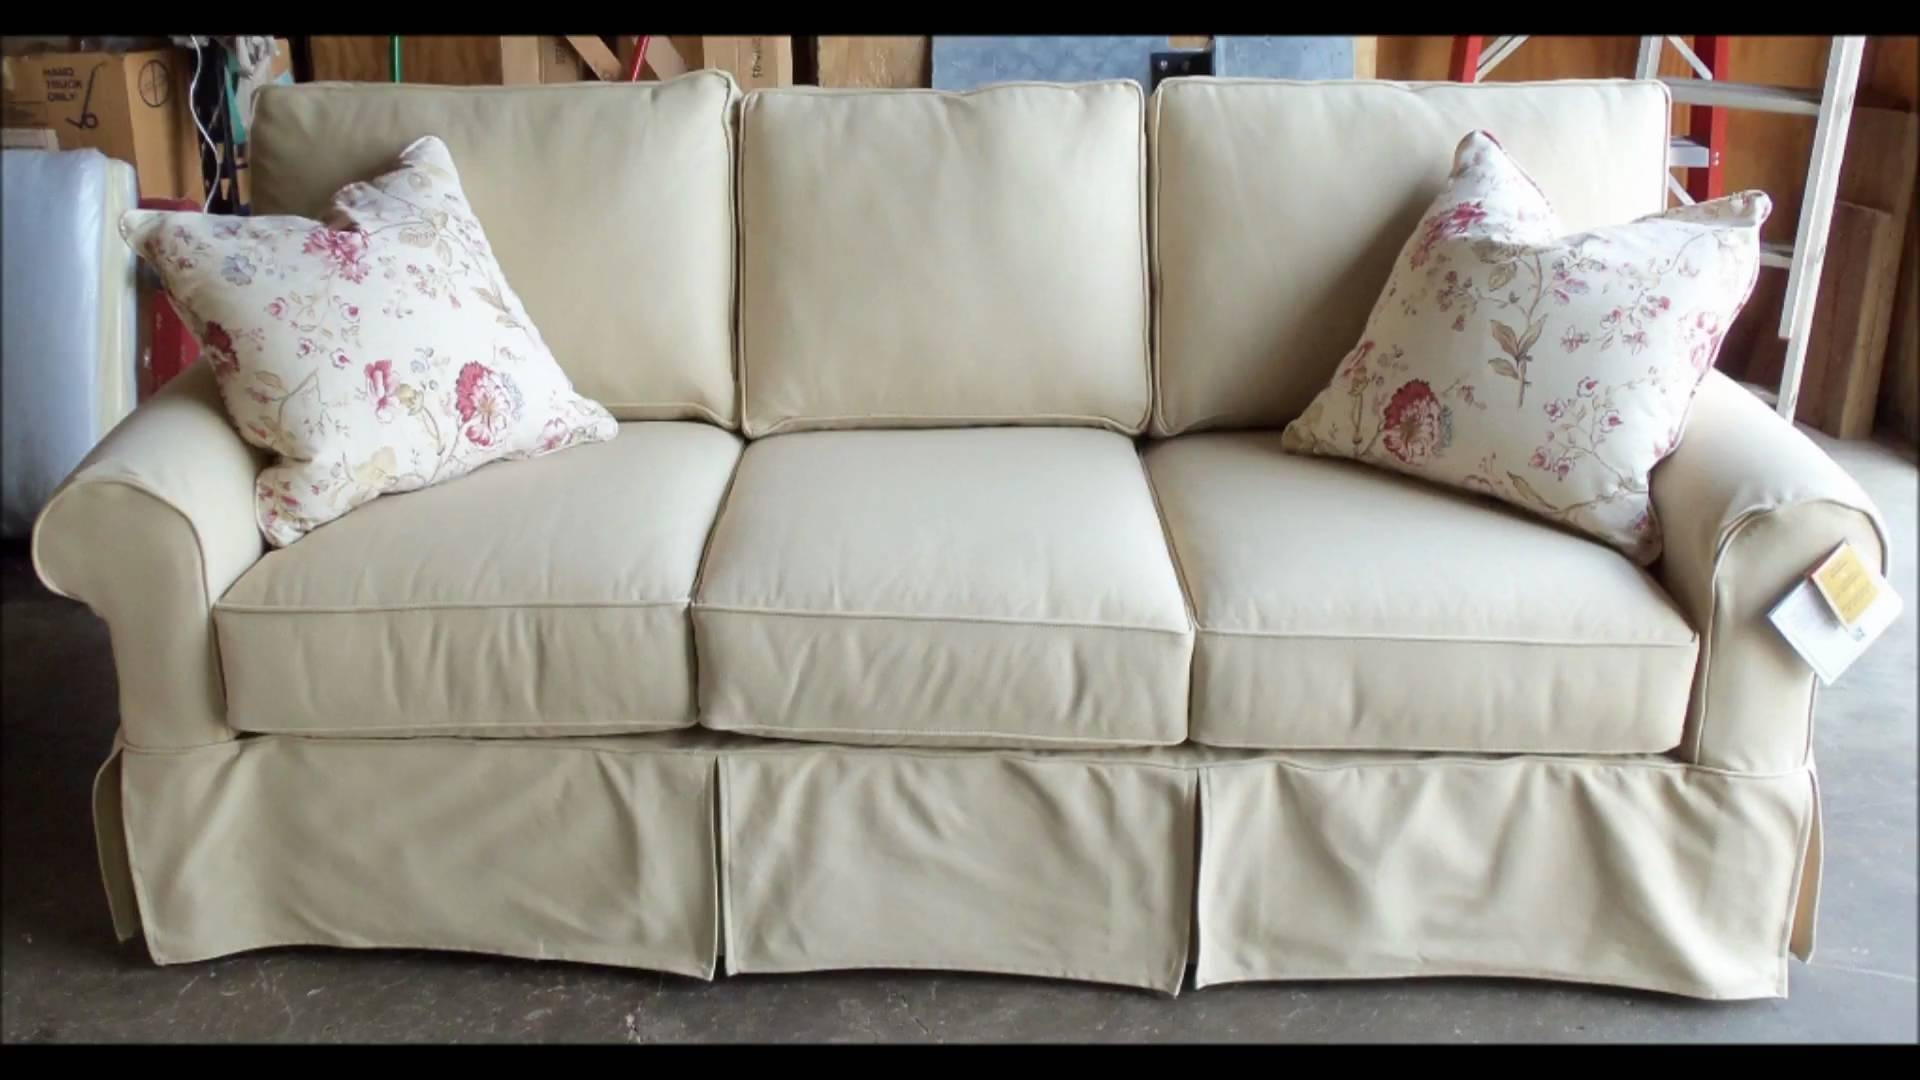 Decorating: Exciting White Rowe Furniture Slipcovers With within Slipcovers For Chairs And Sofas (Image 5 of 15)